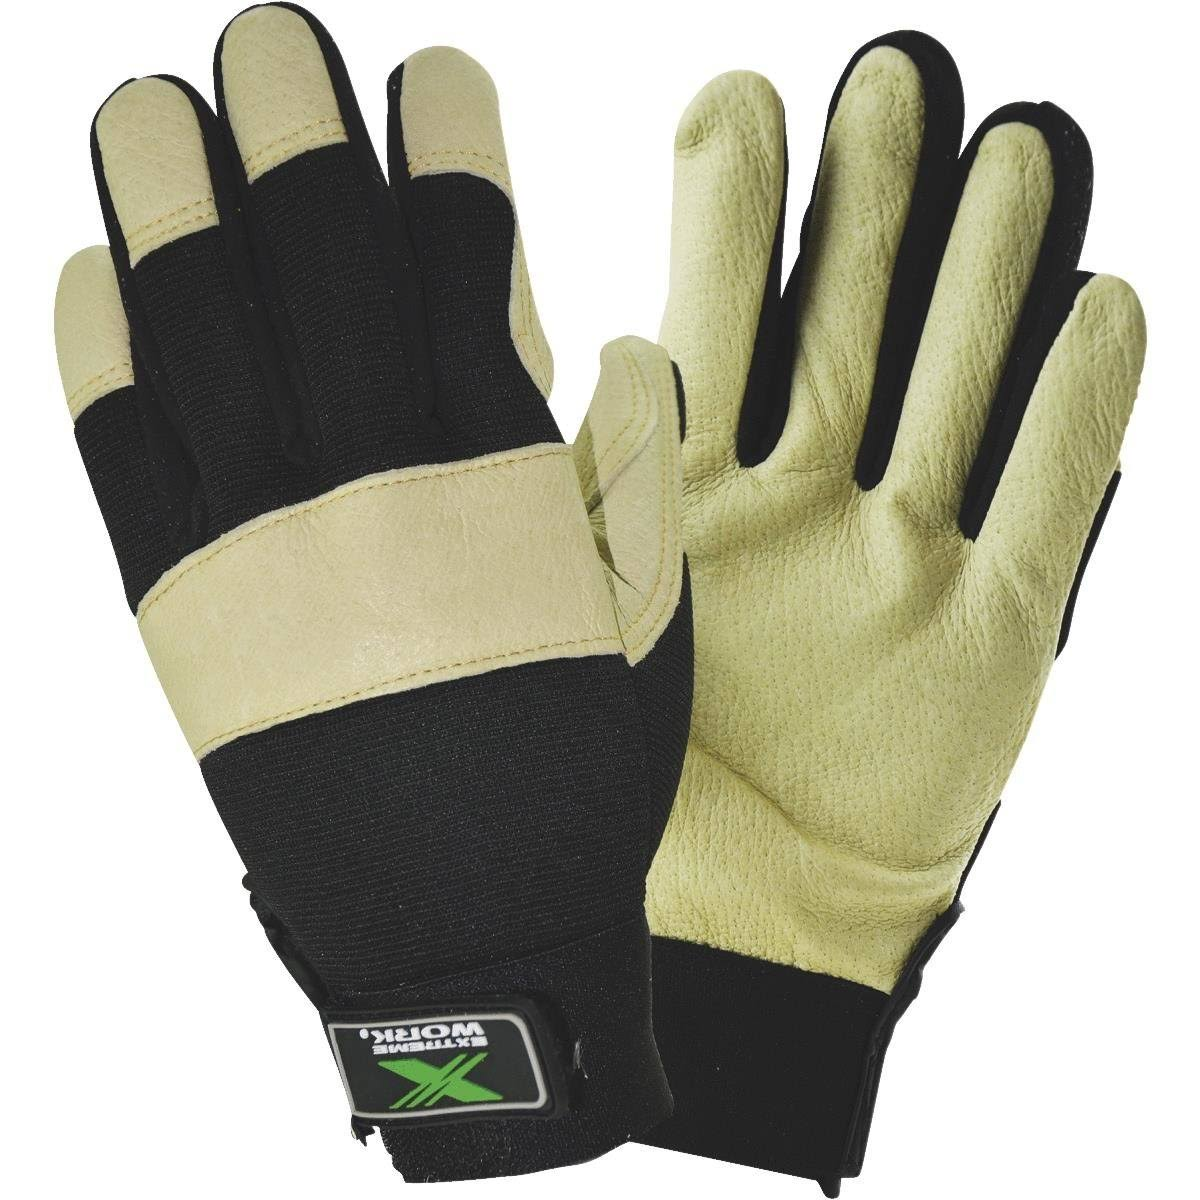 West Chester Protective Gear Pigskin Leather Work Glove